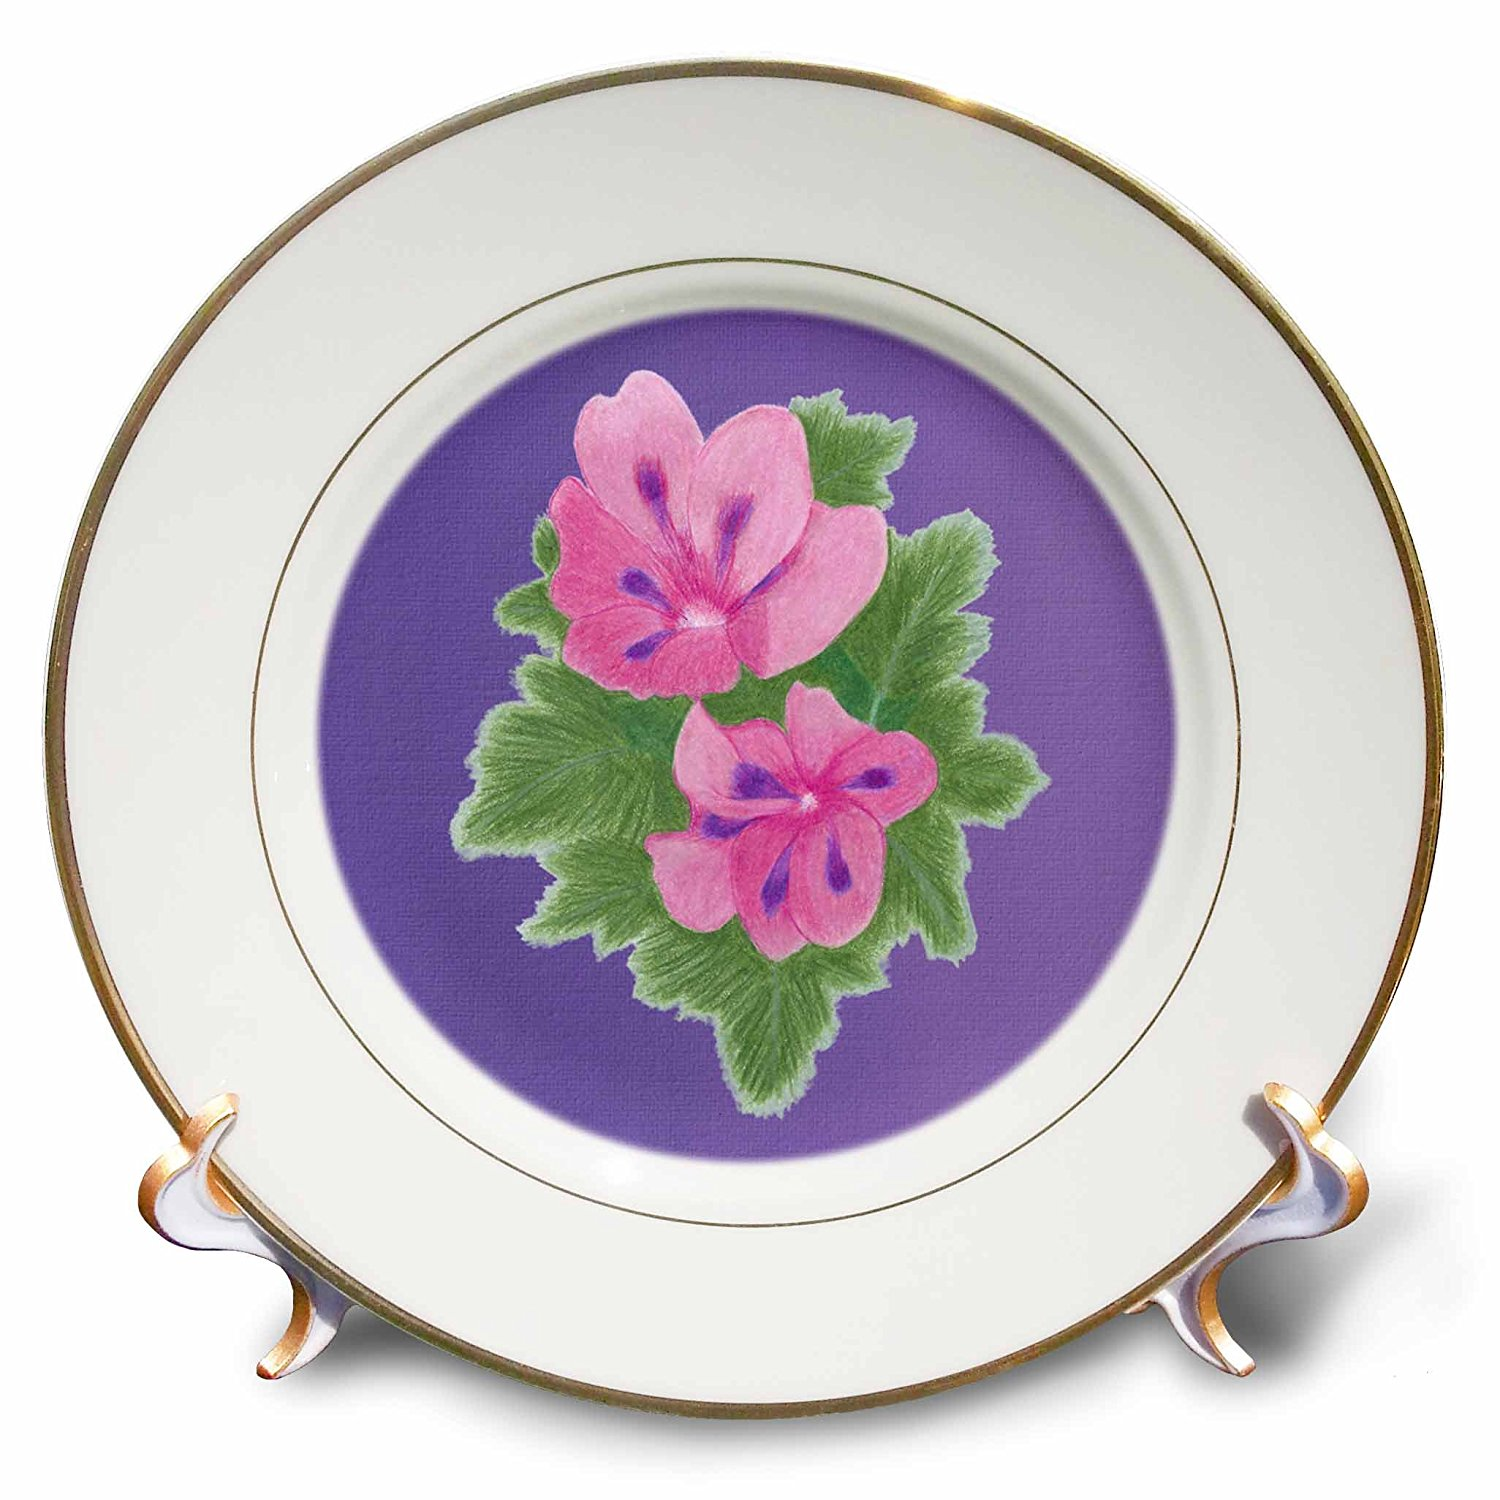 CherylsArt Flowers Art - Pink and Purple Geranium Flowers on Blended Lavender - 8 inch Porcelain Plate (cp_243752_1)